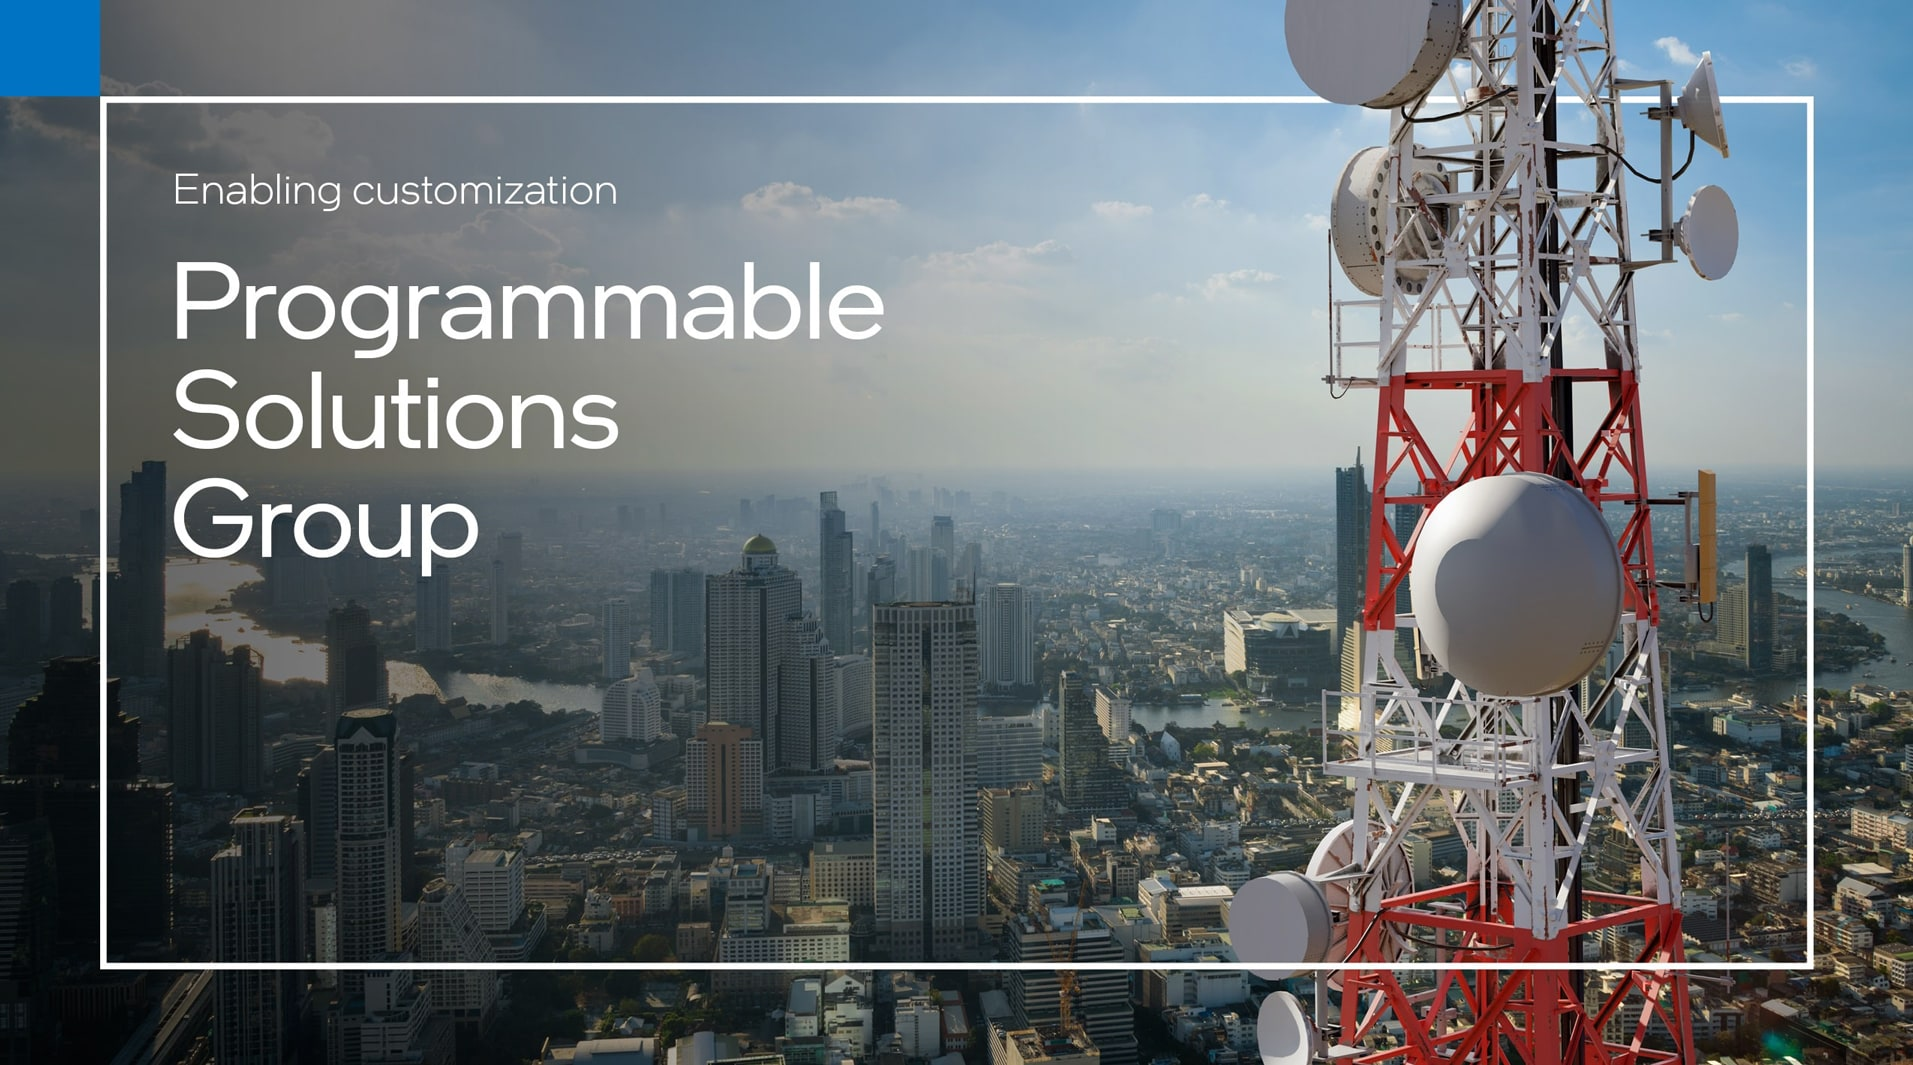 Programmable Solutions Group